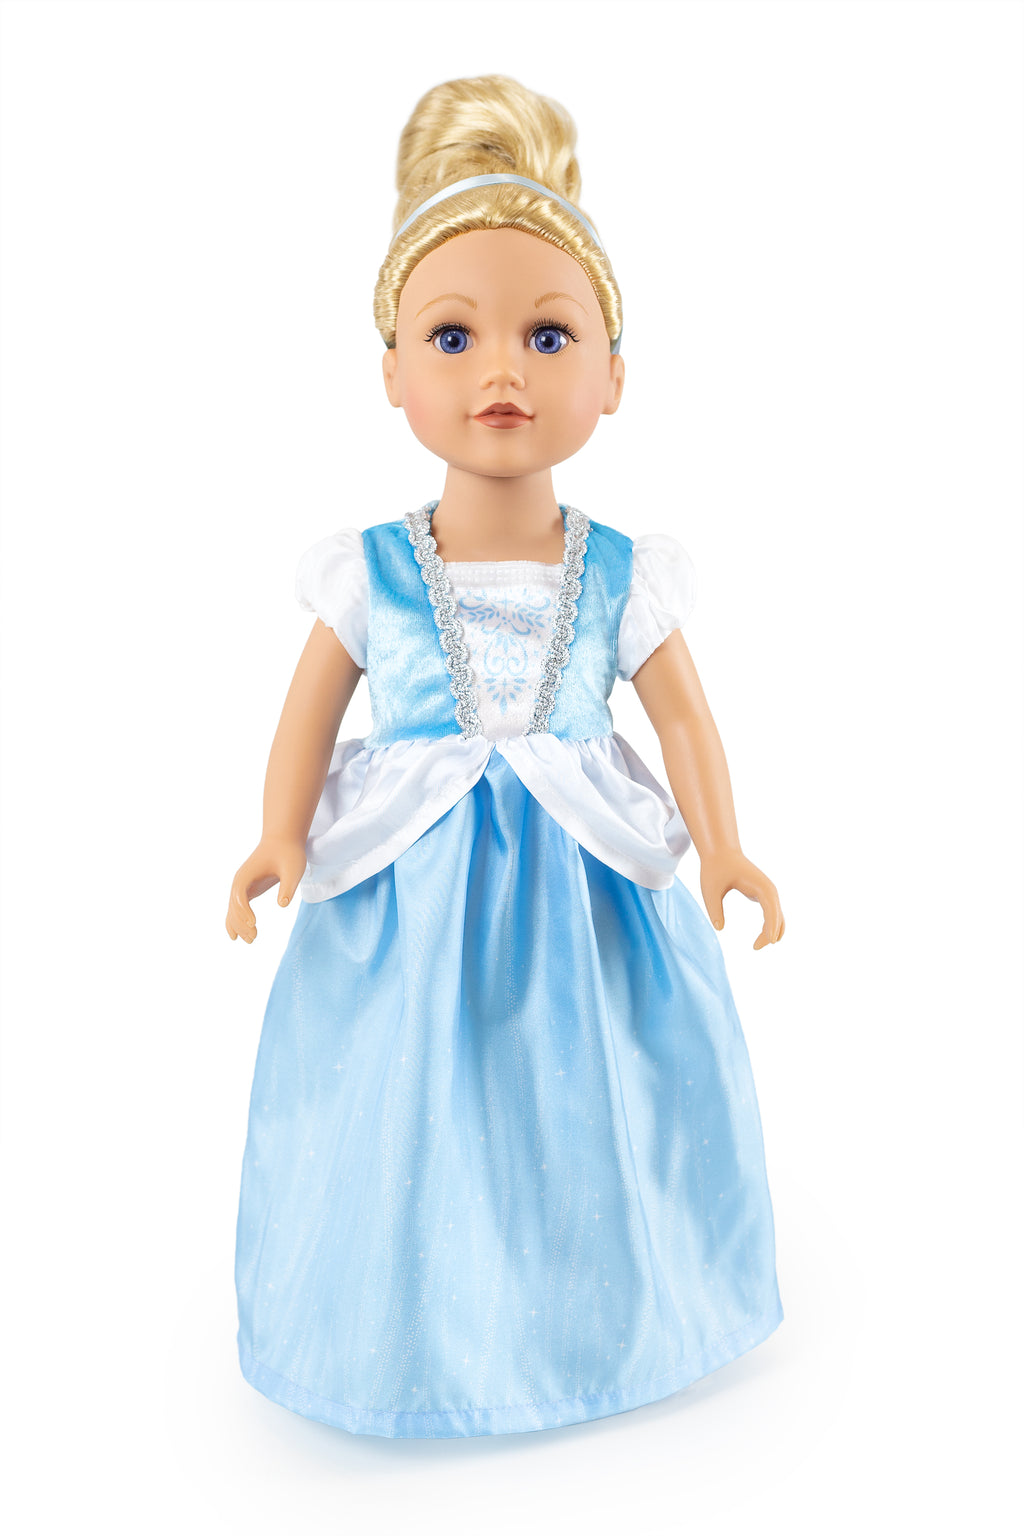 Cinderella blue princess doll dress clothes clothing outfit dressup role play pretend play kid washable American girl madame alexander queen ball gown